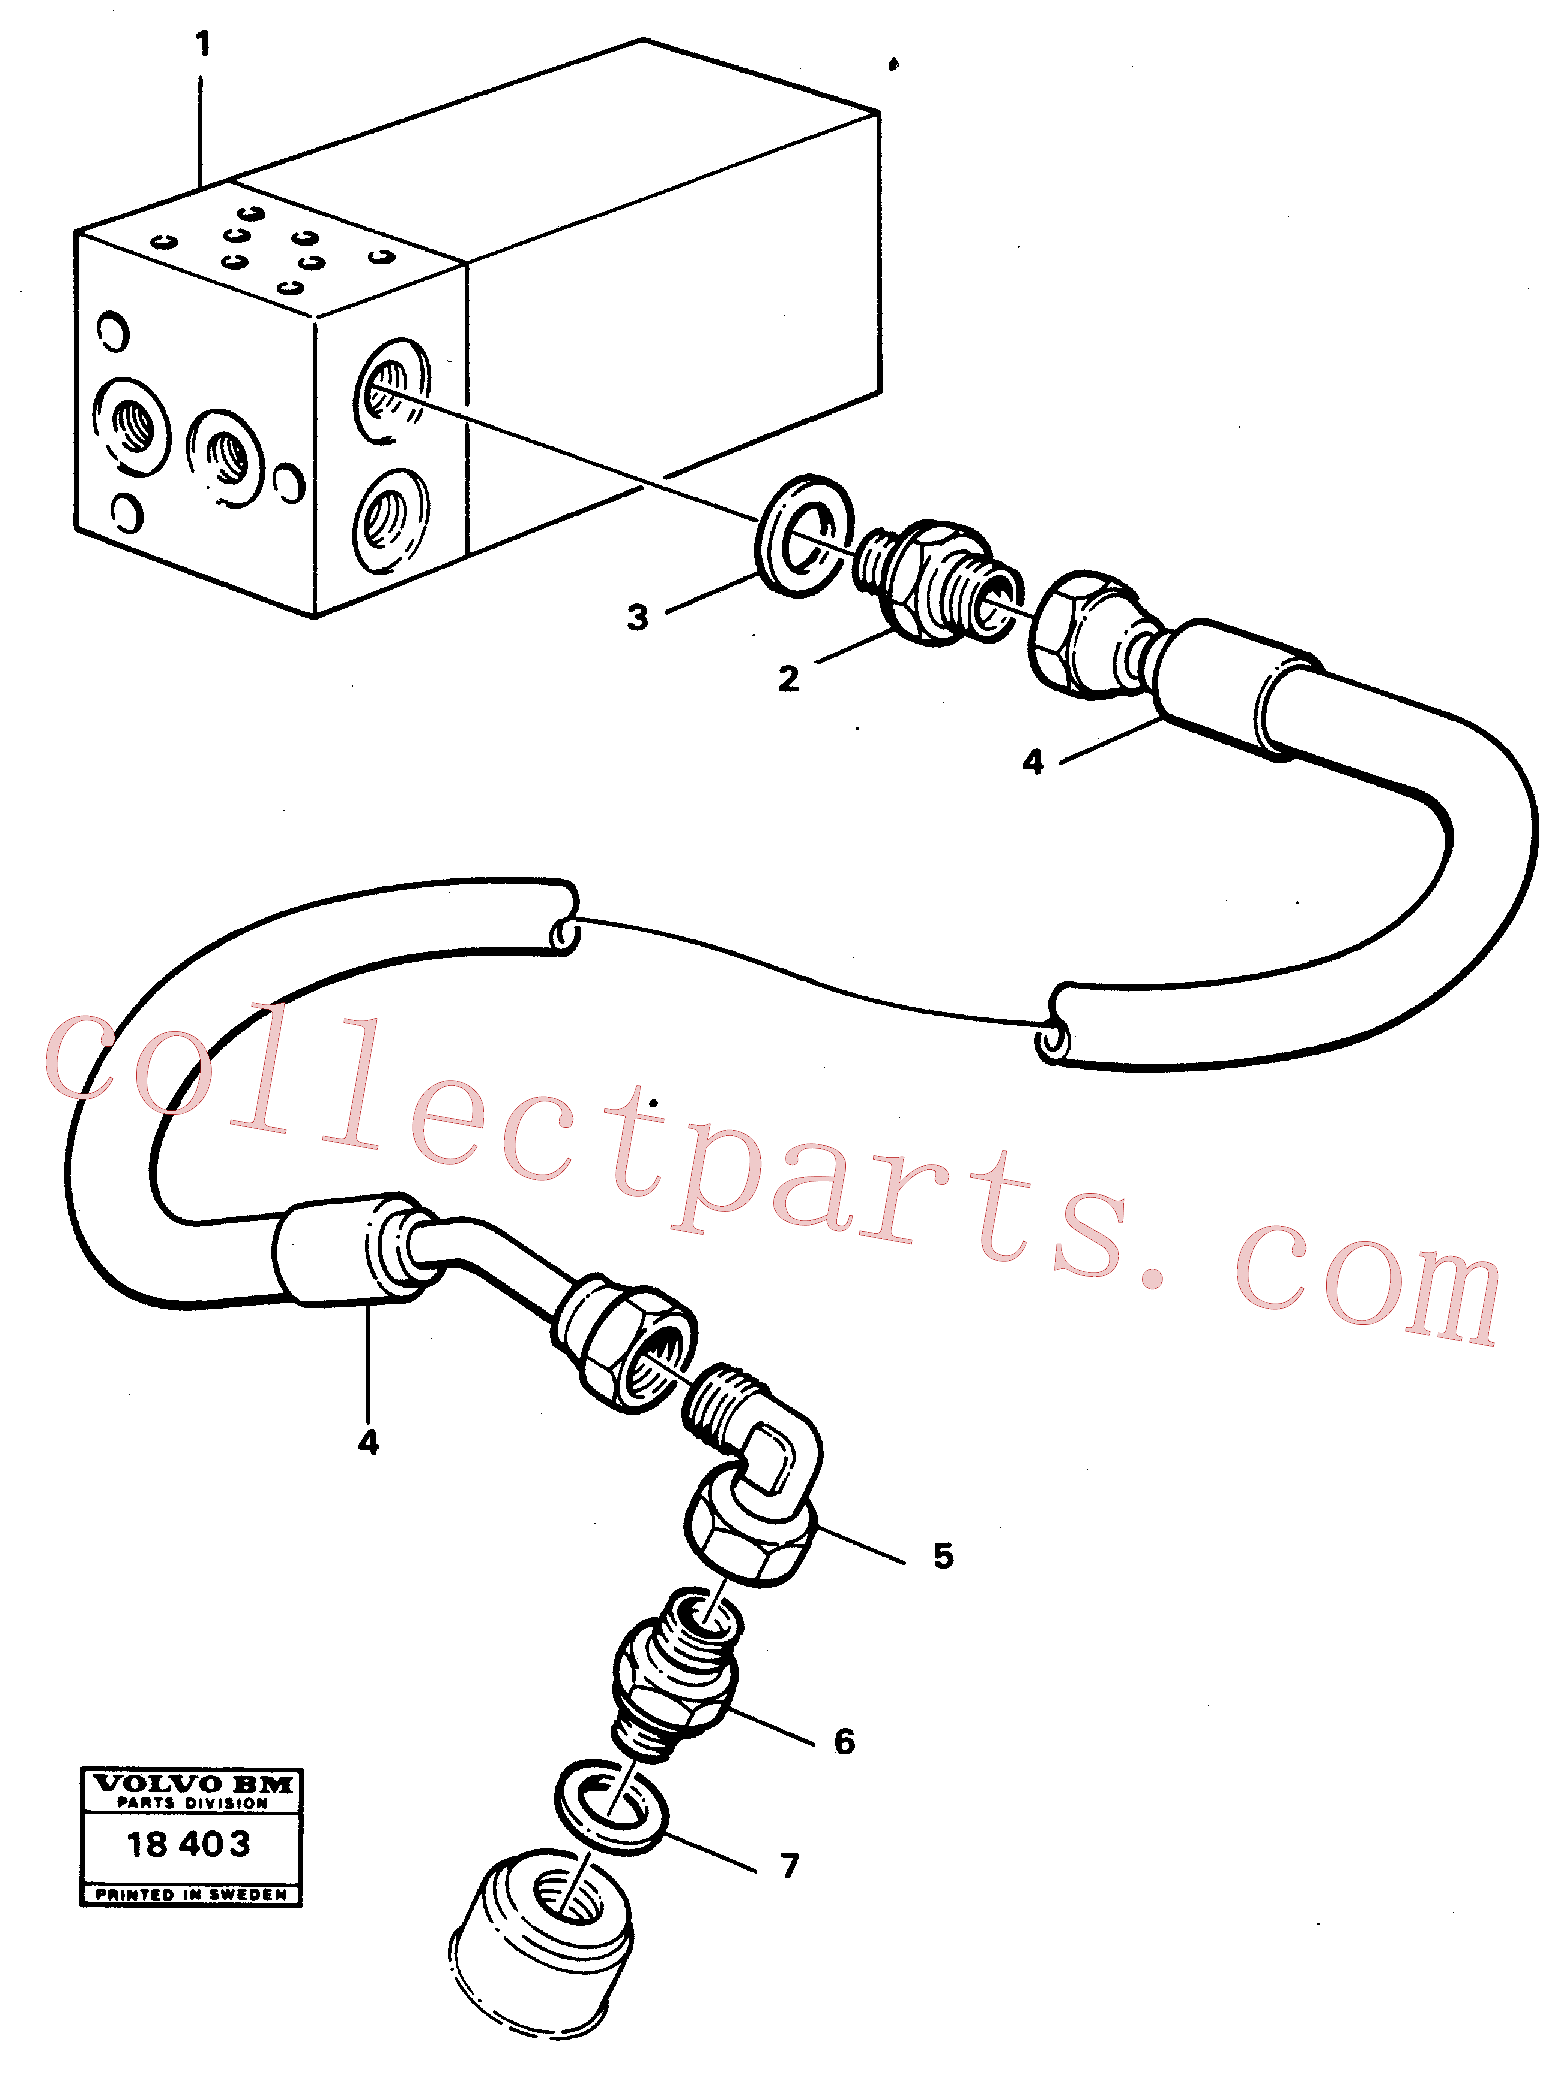 VOE13932892 for Volvo Differential lock, pipes., Hydraulic system(18403 assembly)